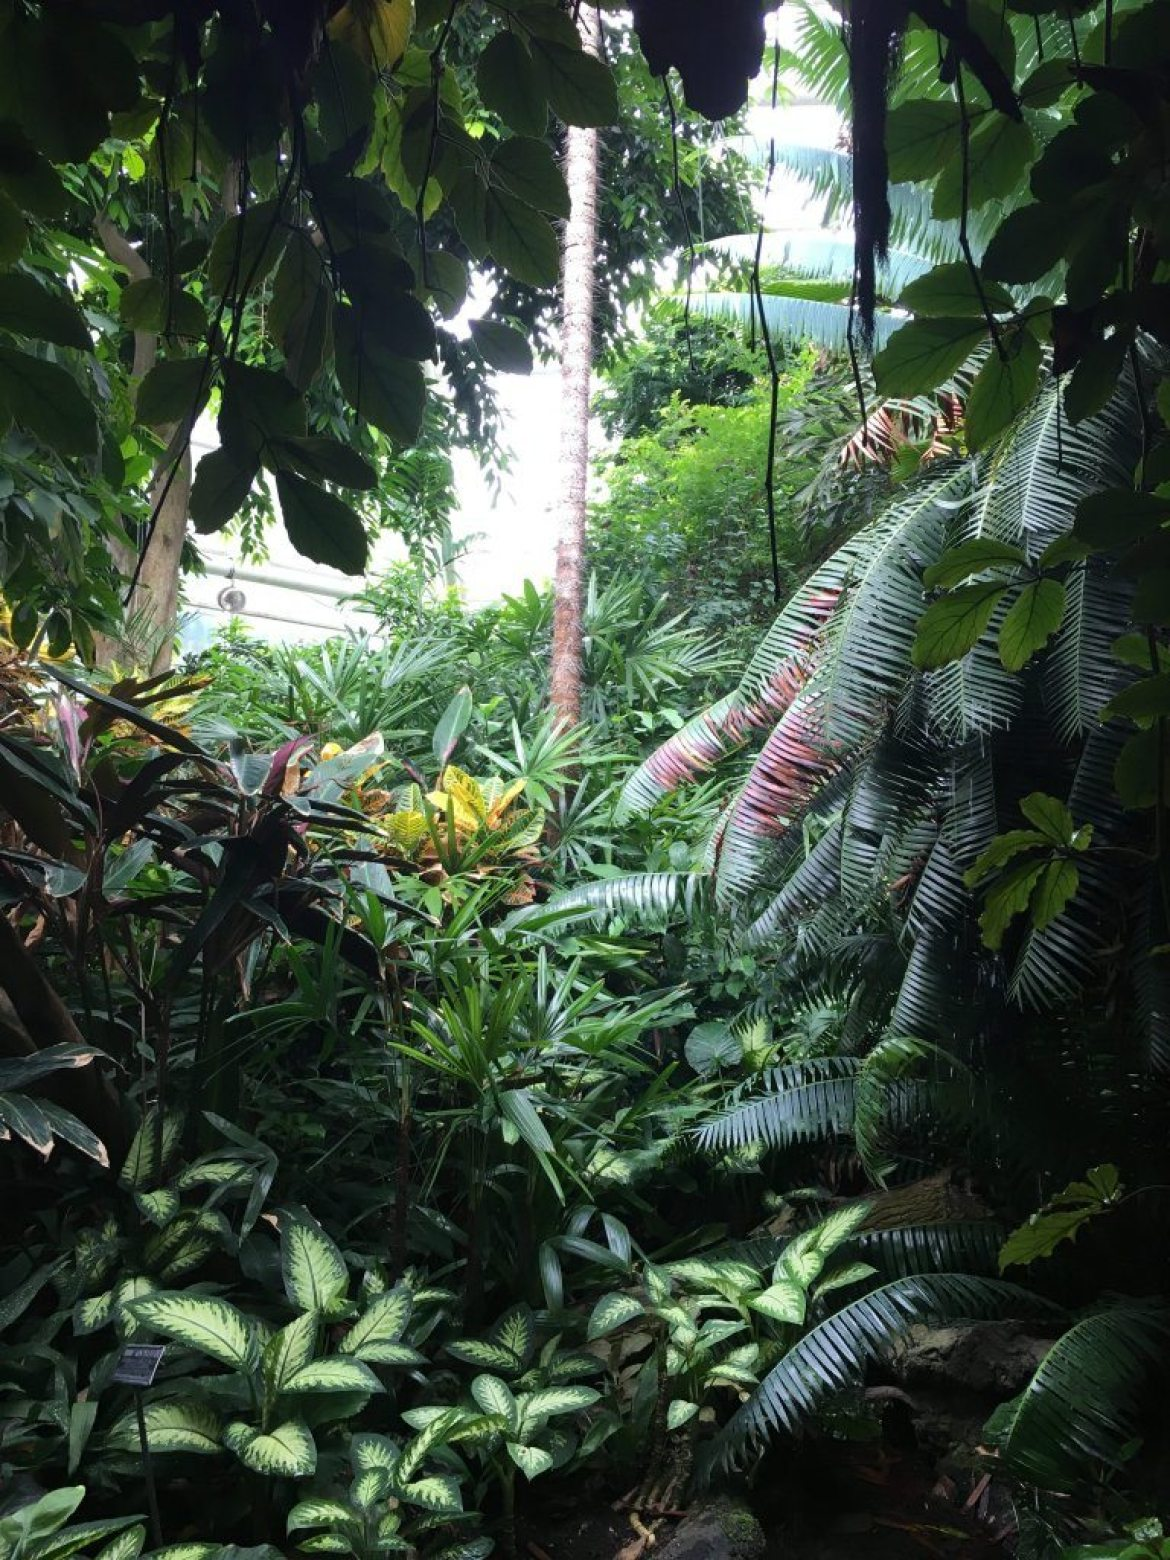 Flora and fauna inside the Tropical Pavilion